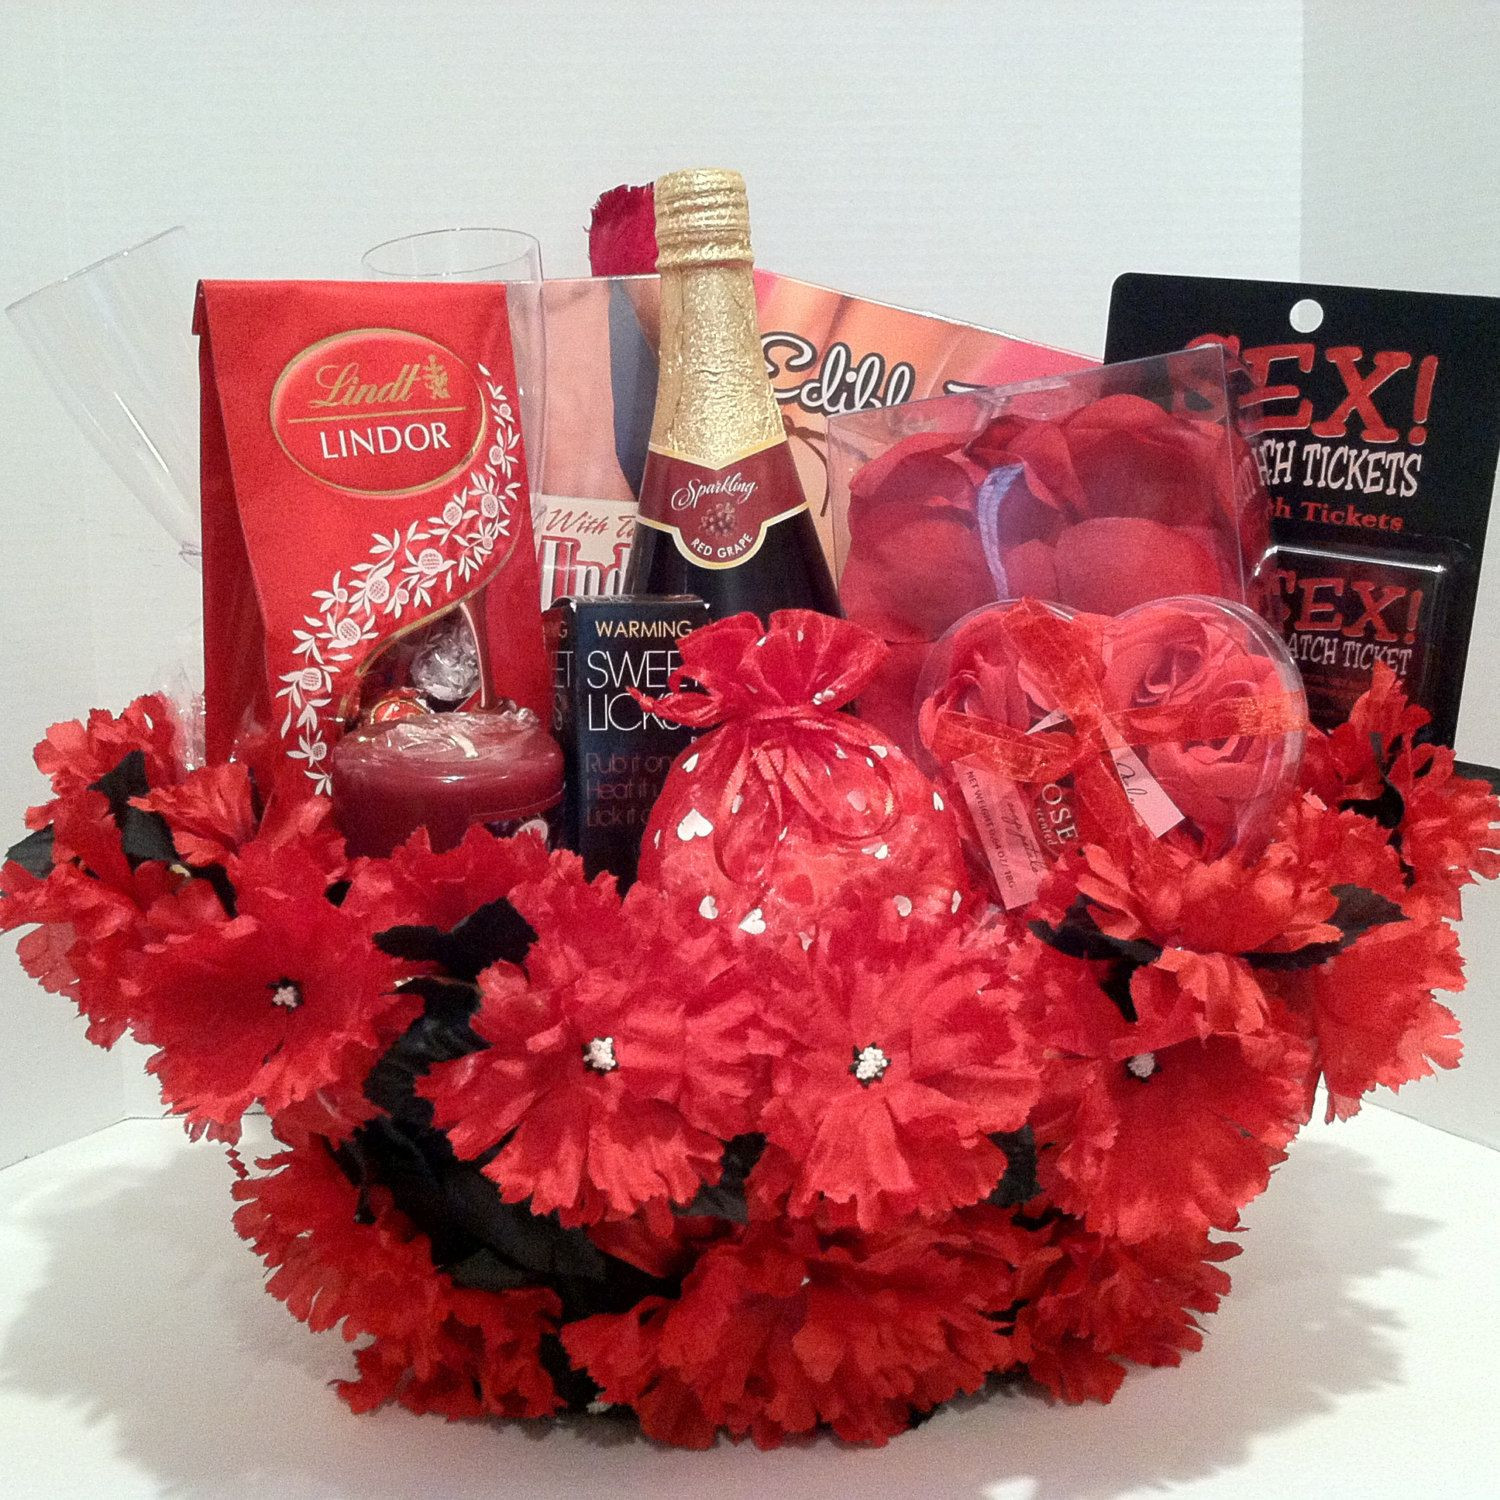 Best ideas about Romantic Gift Basket Ideas For Couples . Save or Pin Romantic Evening Gift Baskets only at Now.